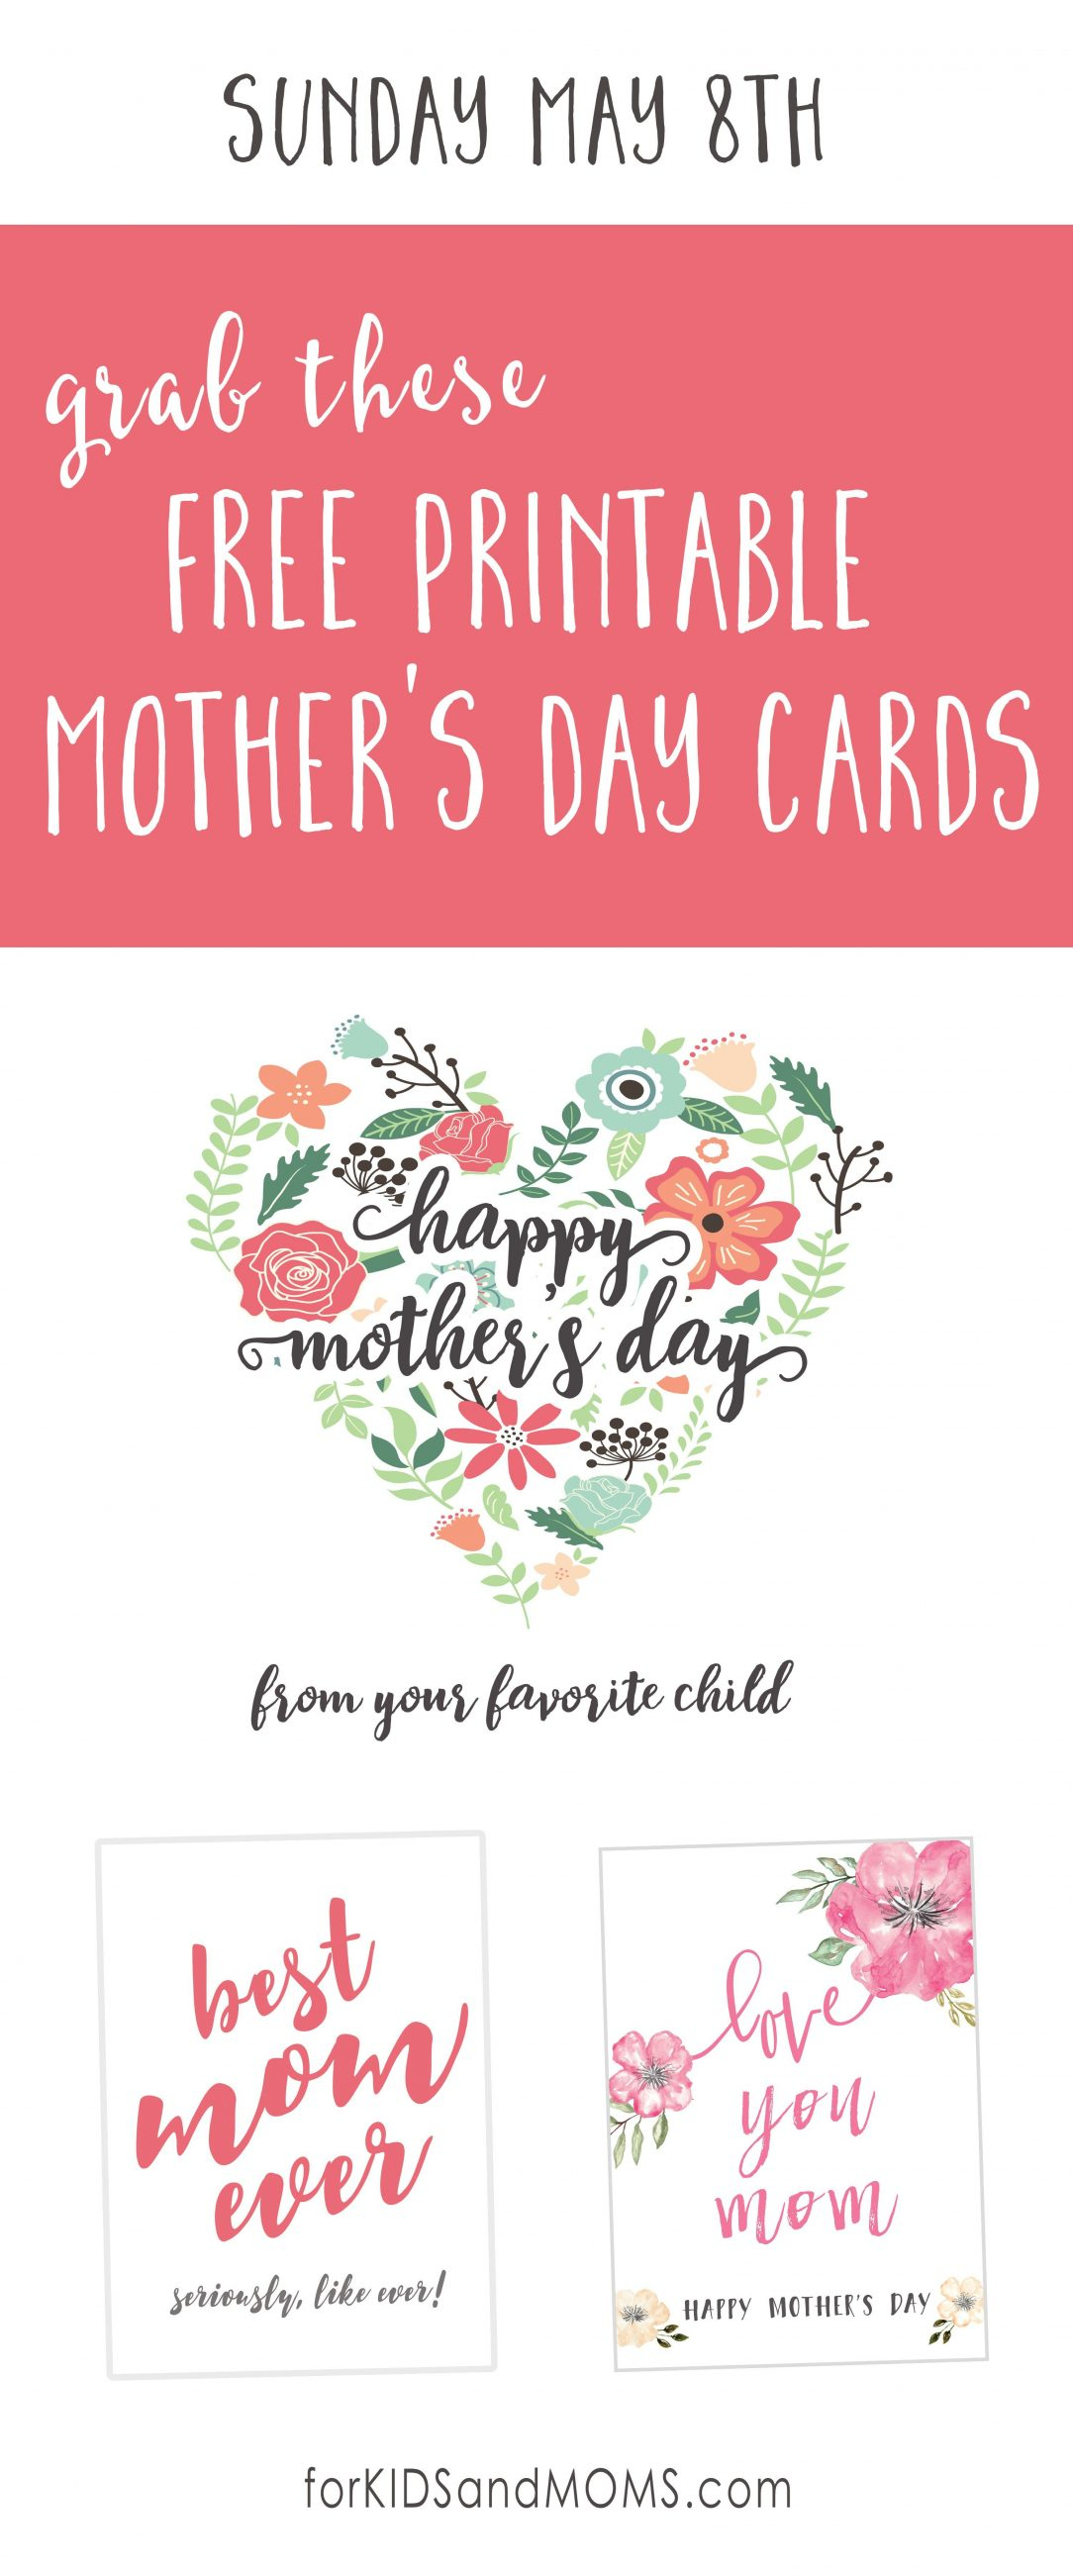 Dandy Examples Of Free Printable Mothers Day Cards No Download From - Free Printable Mothers Day Cards No Download